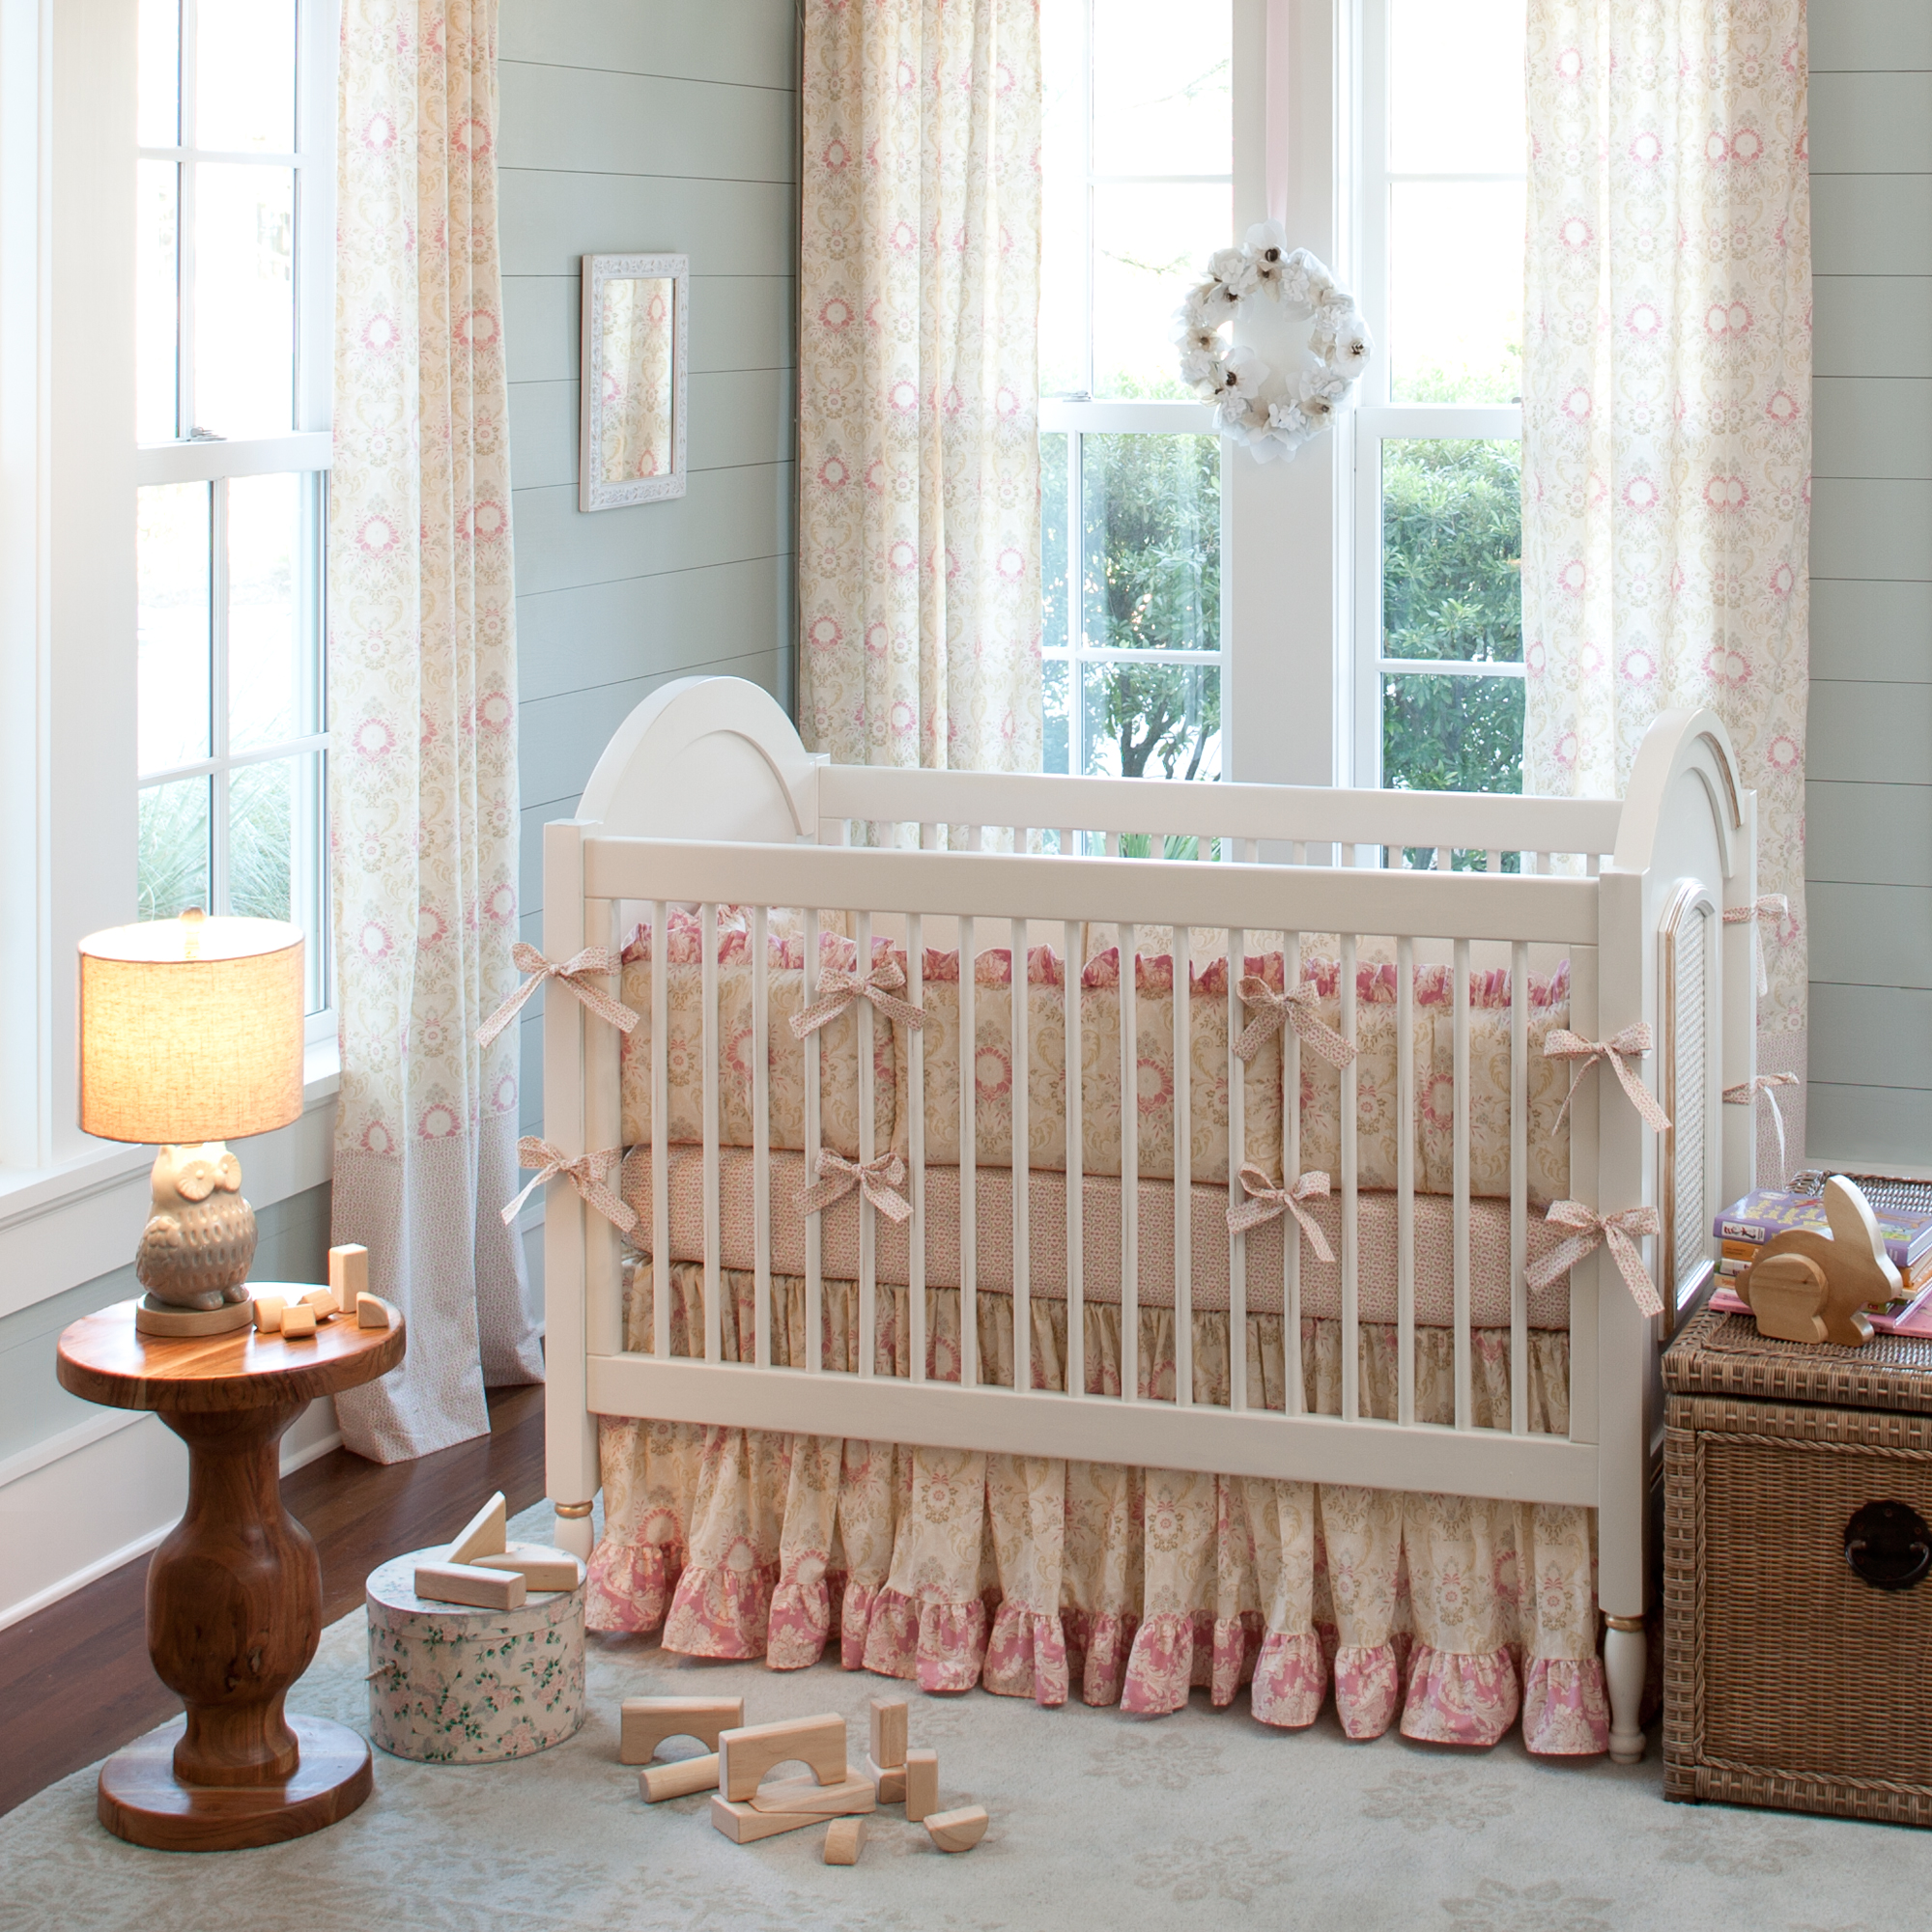 Bedding Decor: Giveaway: Carousel Designs Crib Bedding Set